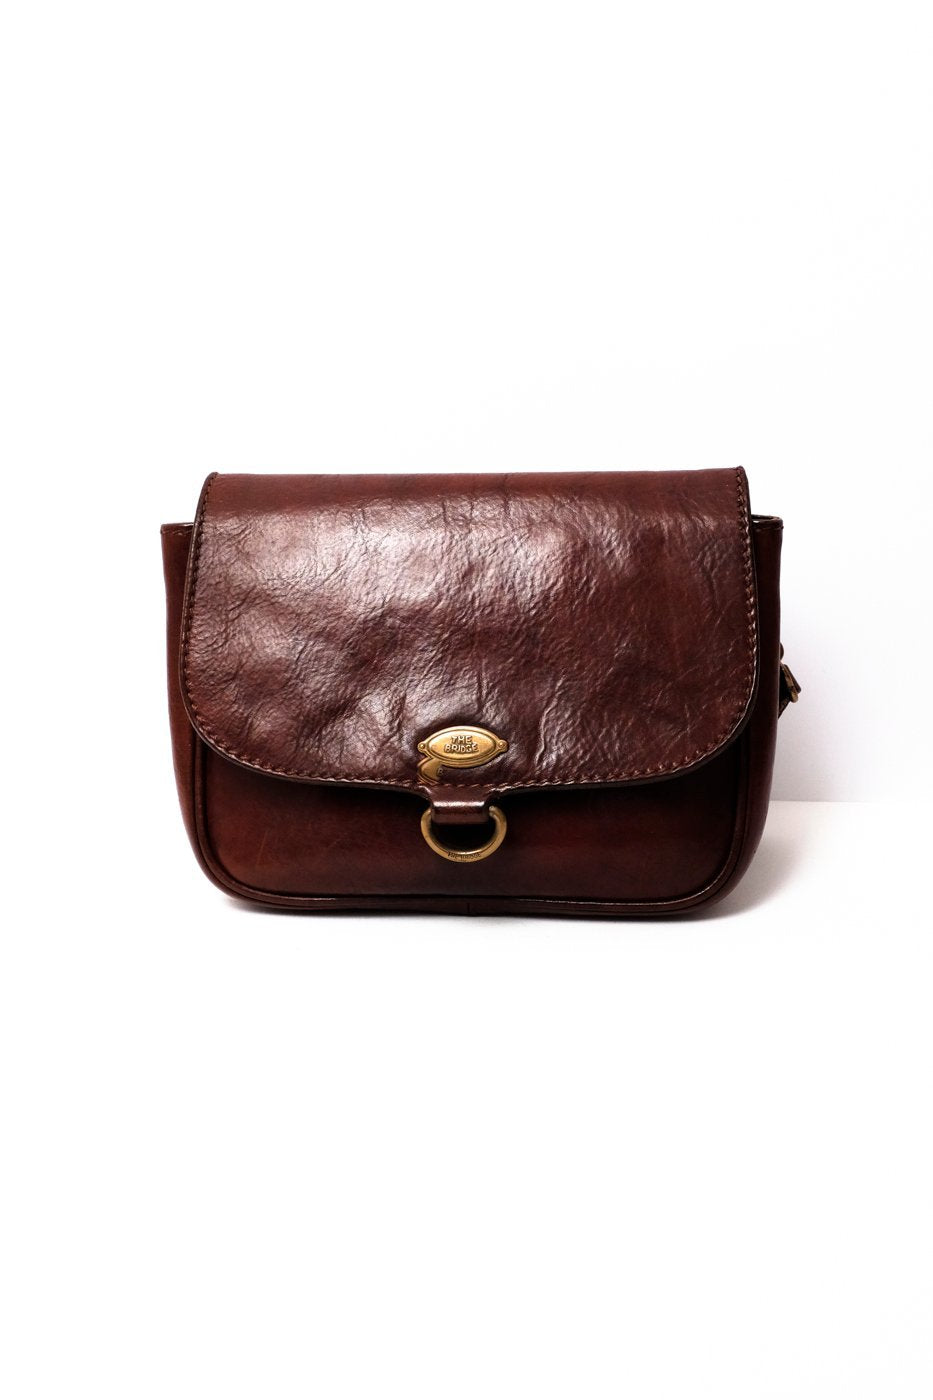 0332_THE BRIDGE SADDLE LEATHER BAG